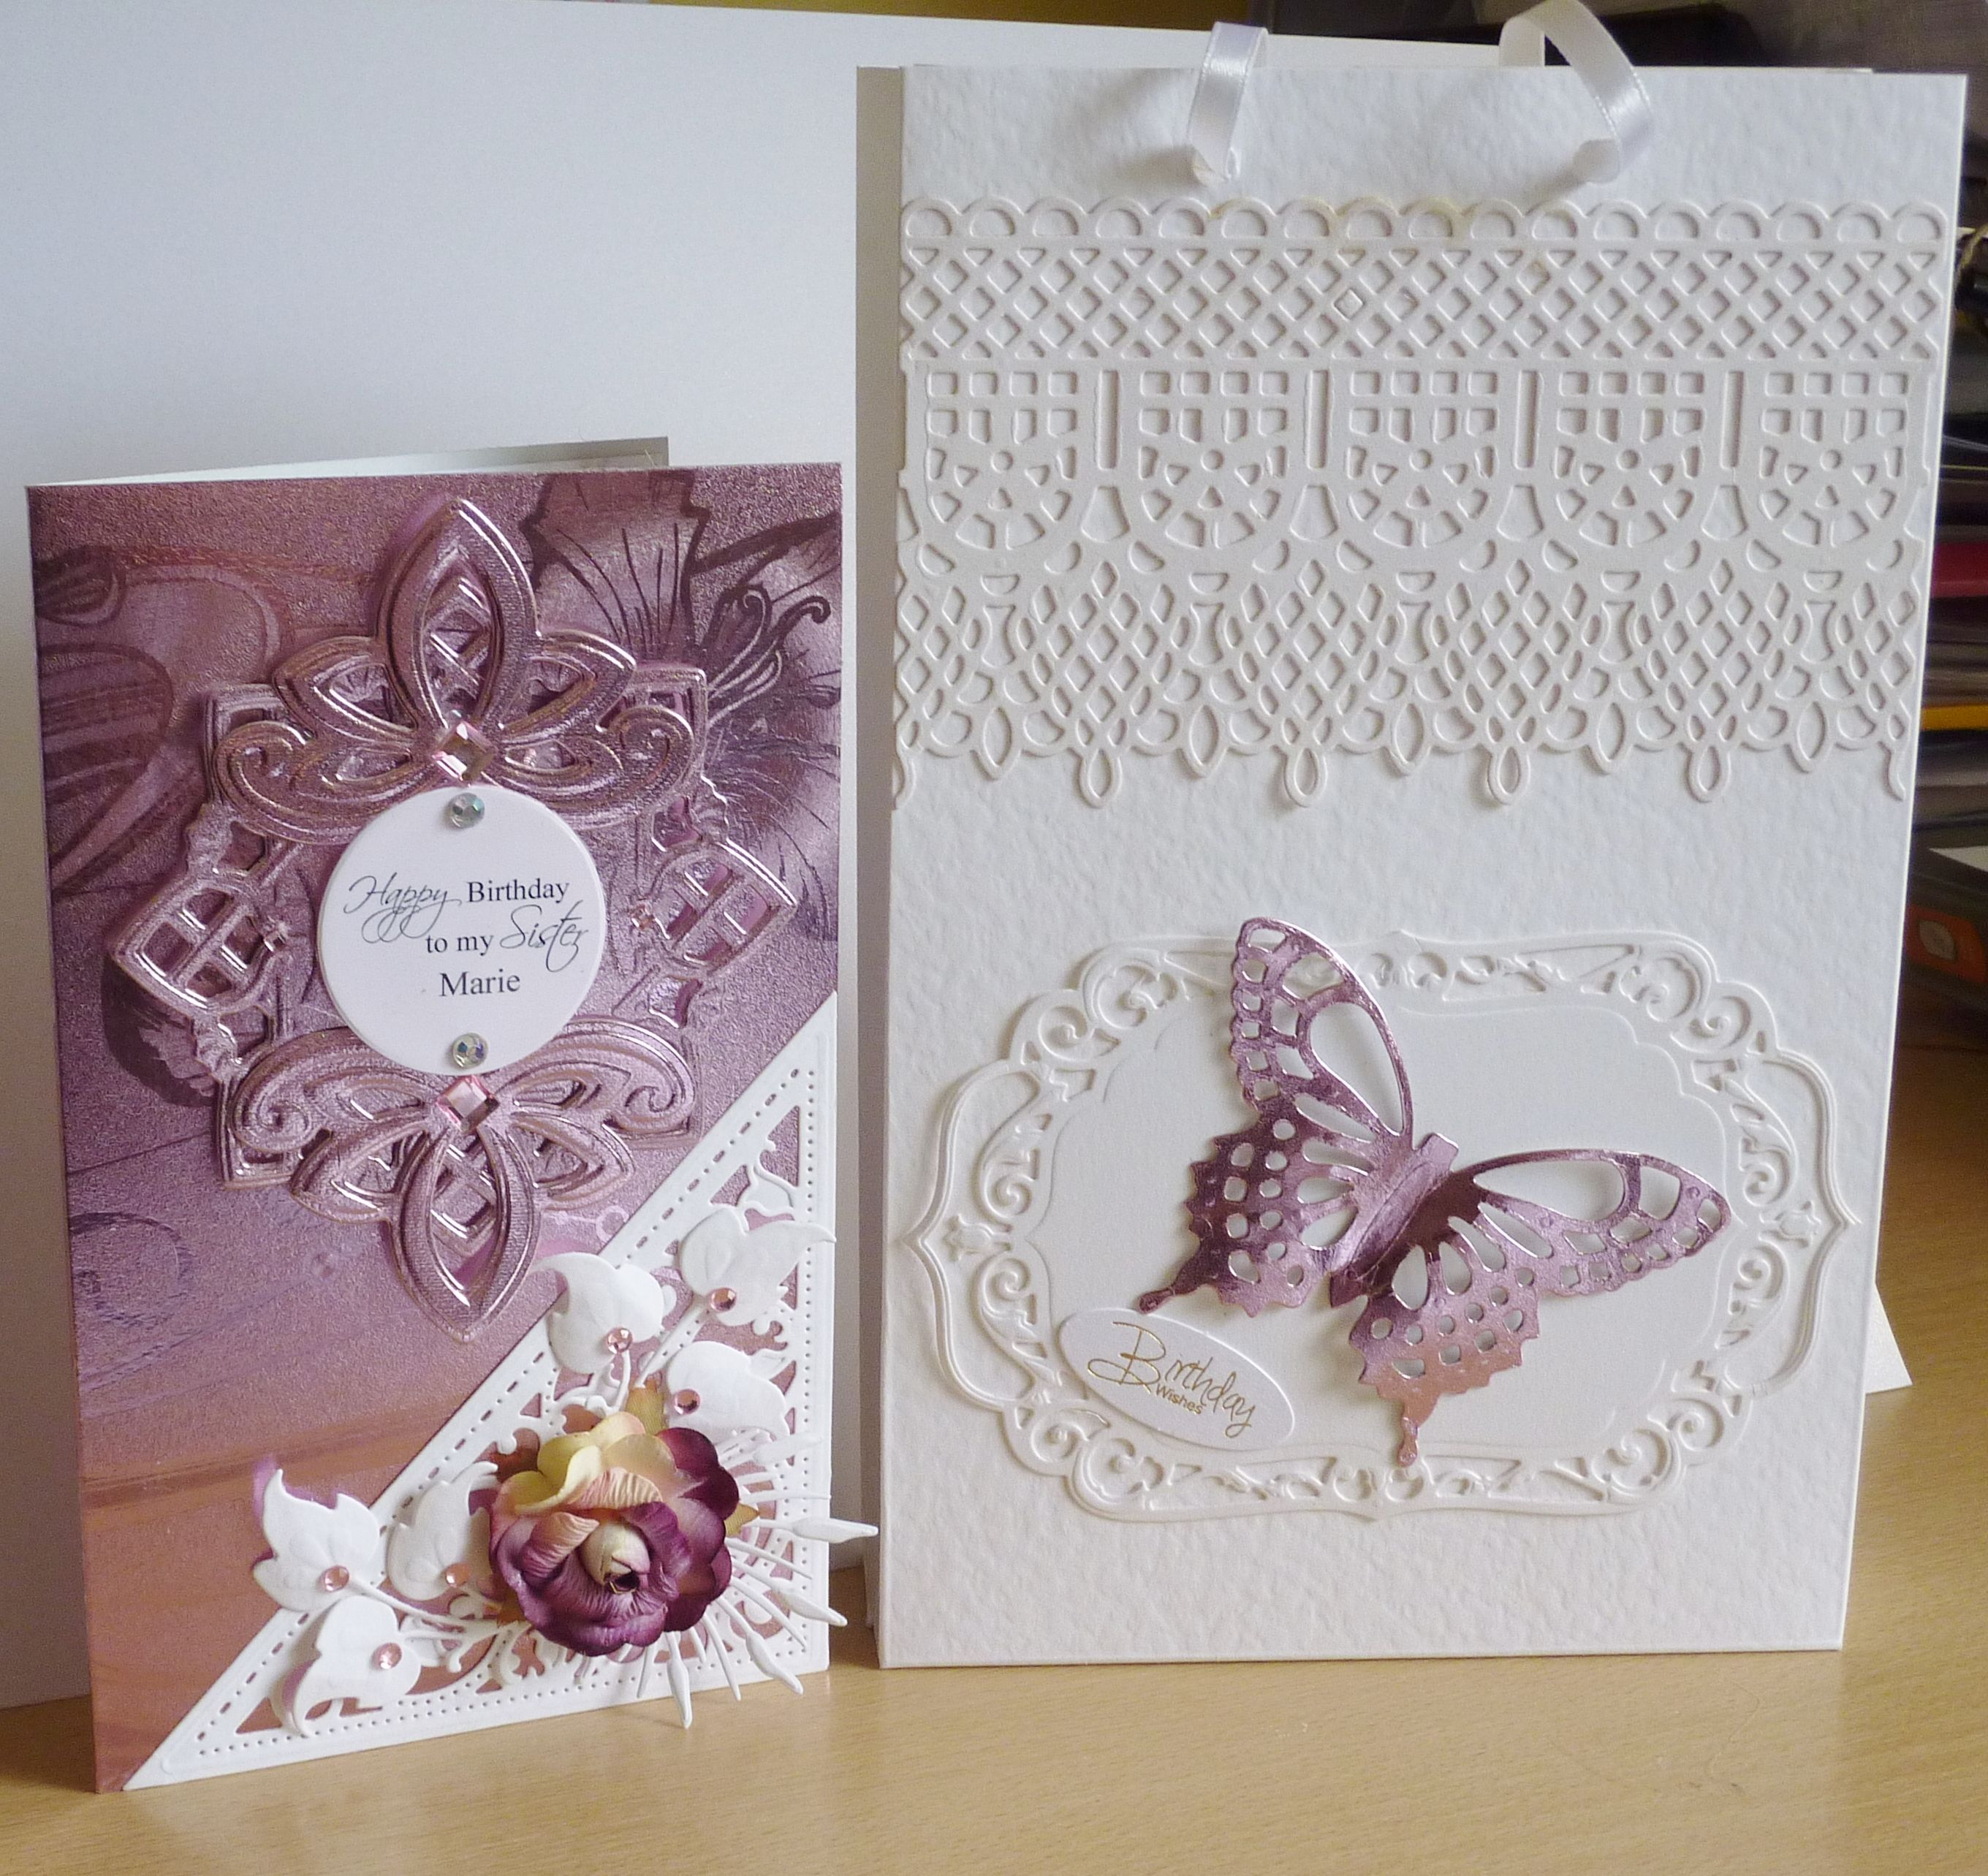 Special order birthday card and bag Birthday cards